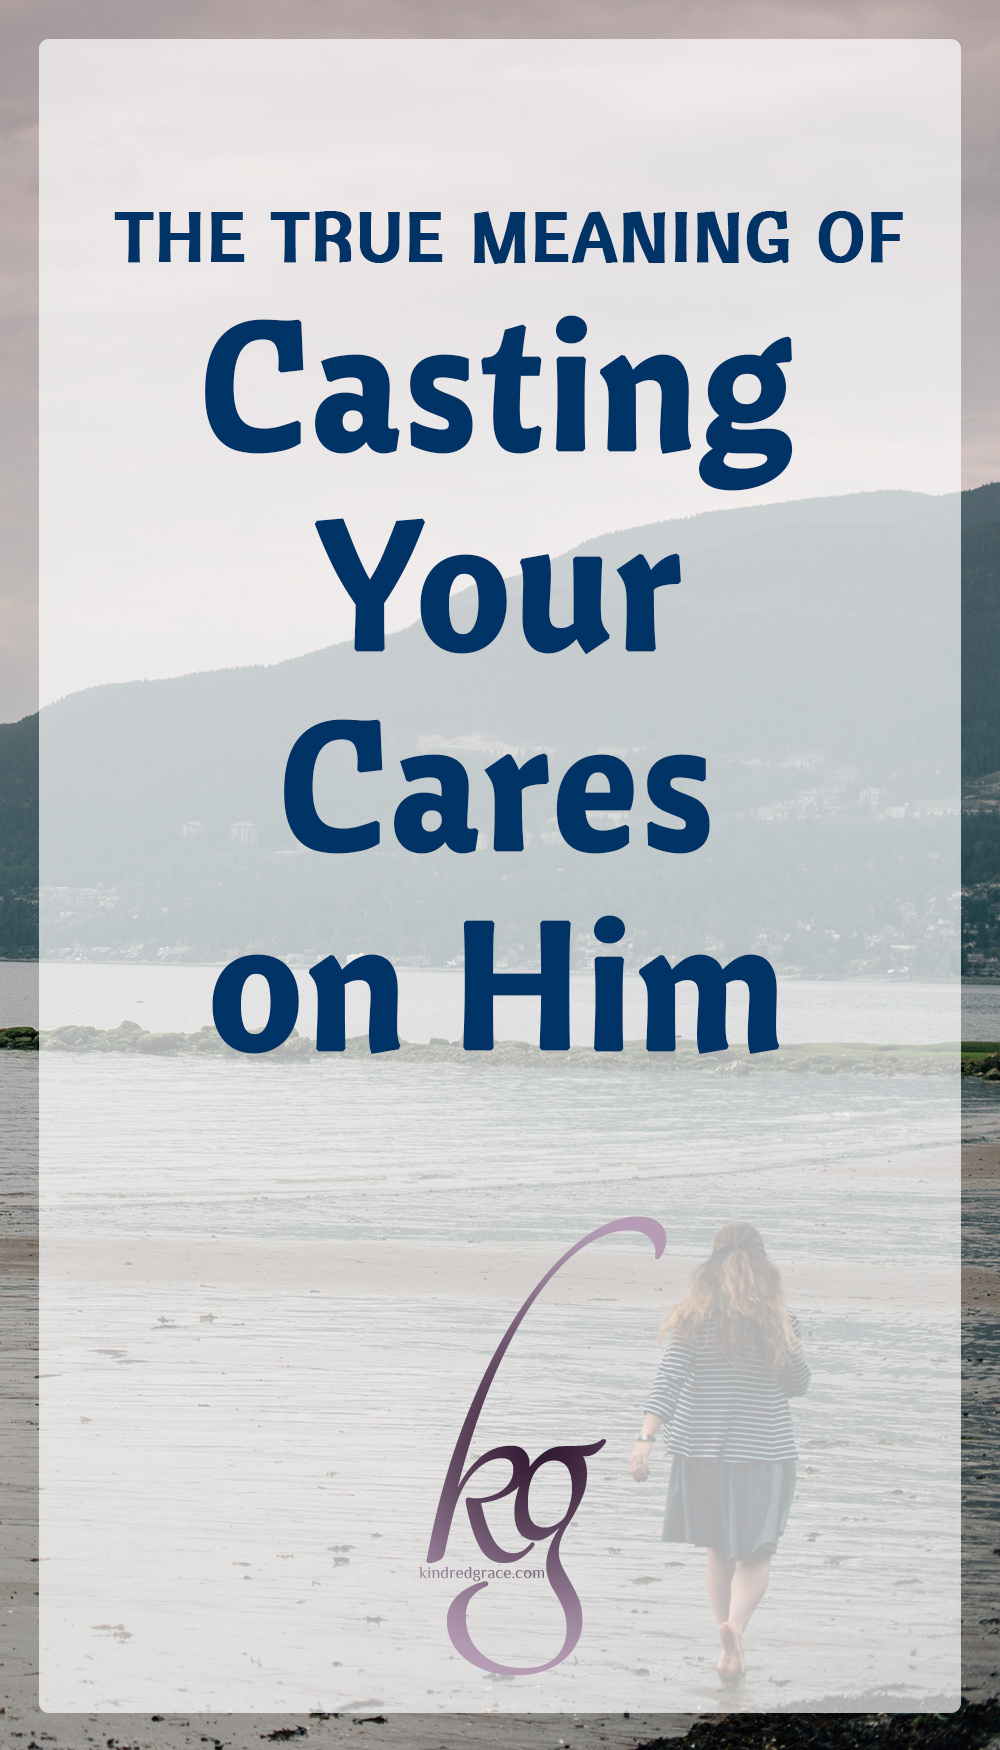 The True Meaning Of Casting Your Cares On Him via @KindredGrace